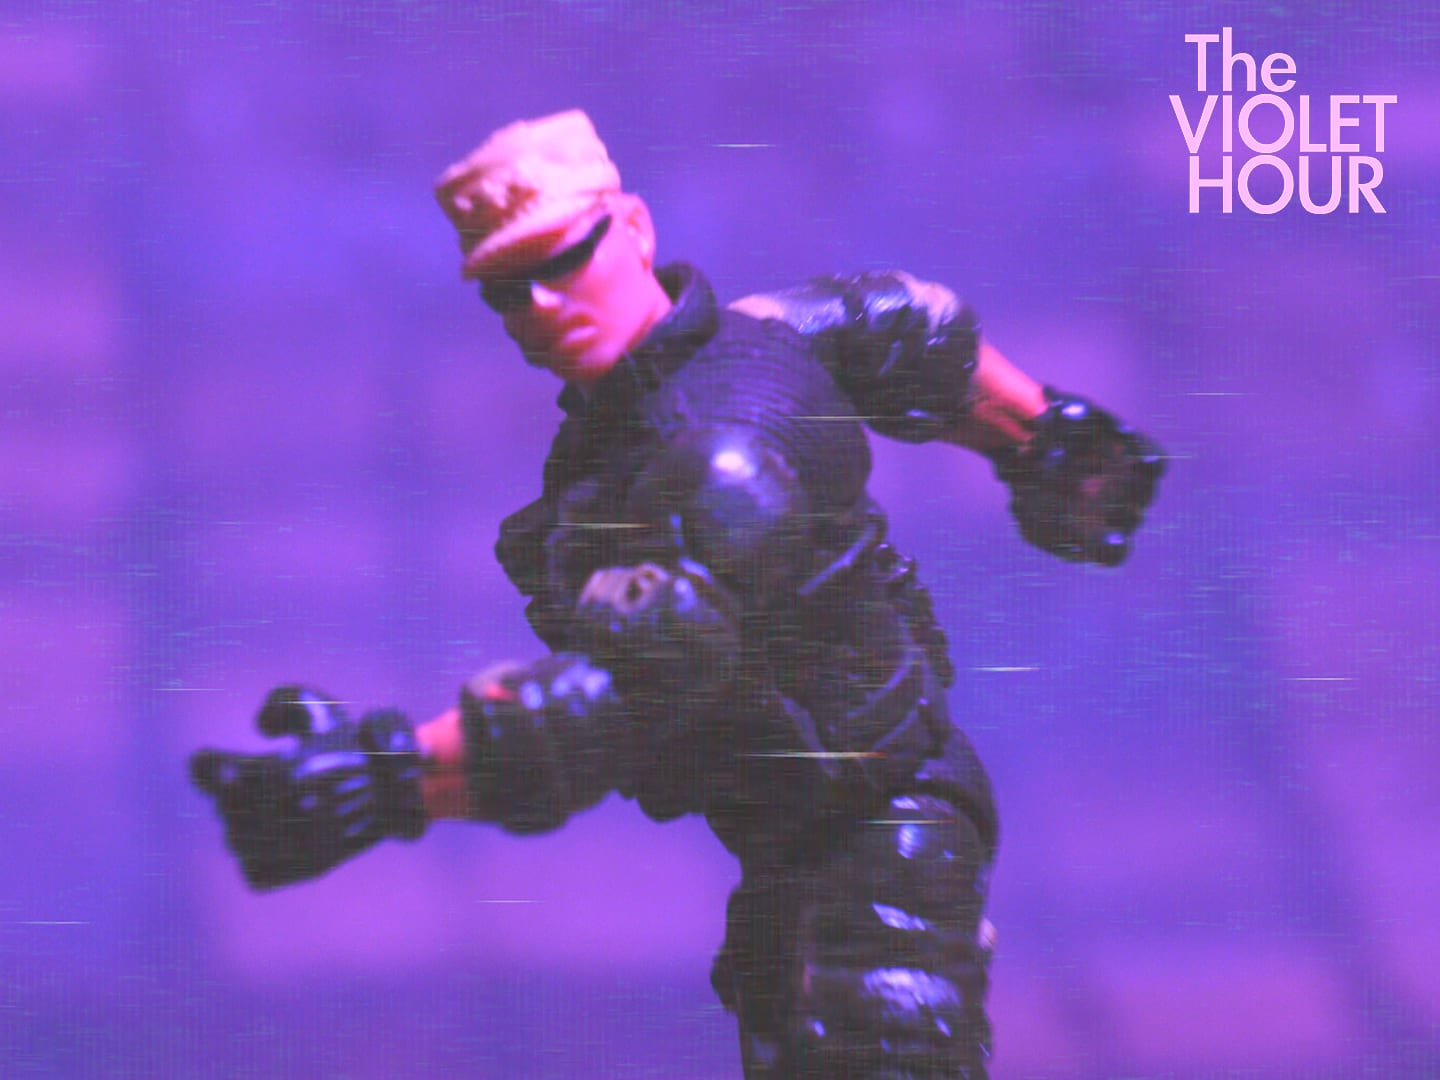 The Violet Hour: '90s Toy Commercial